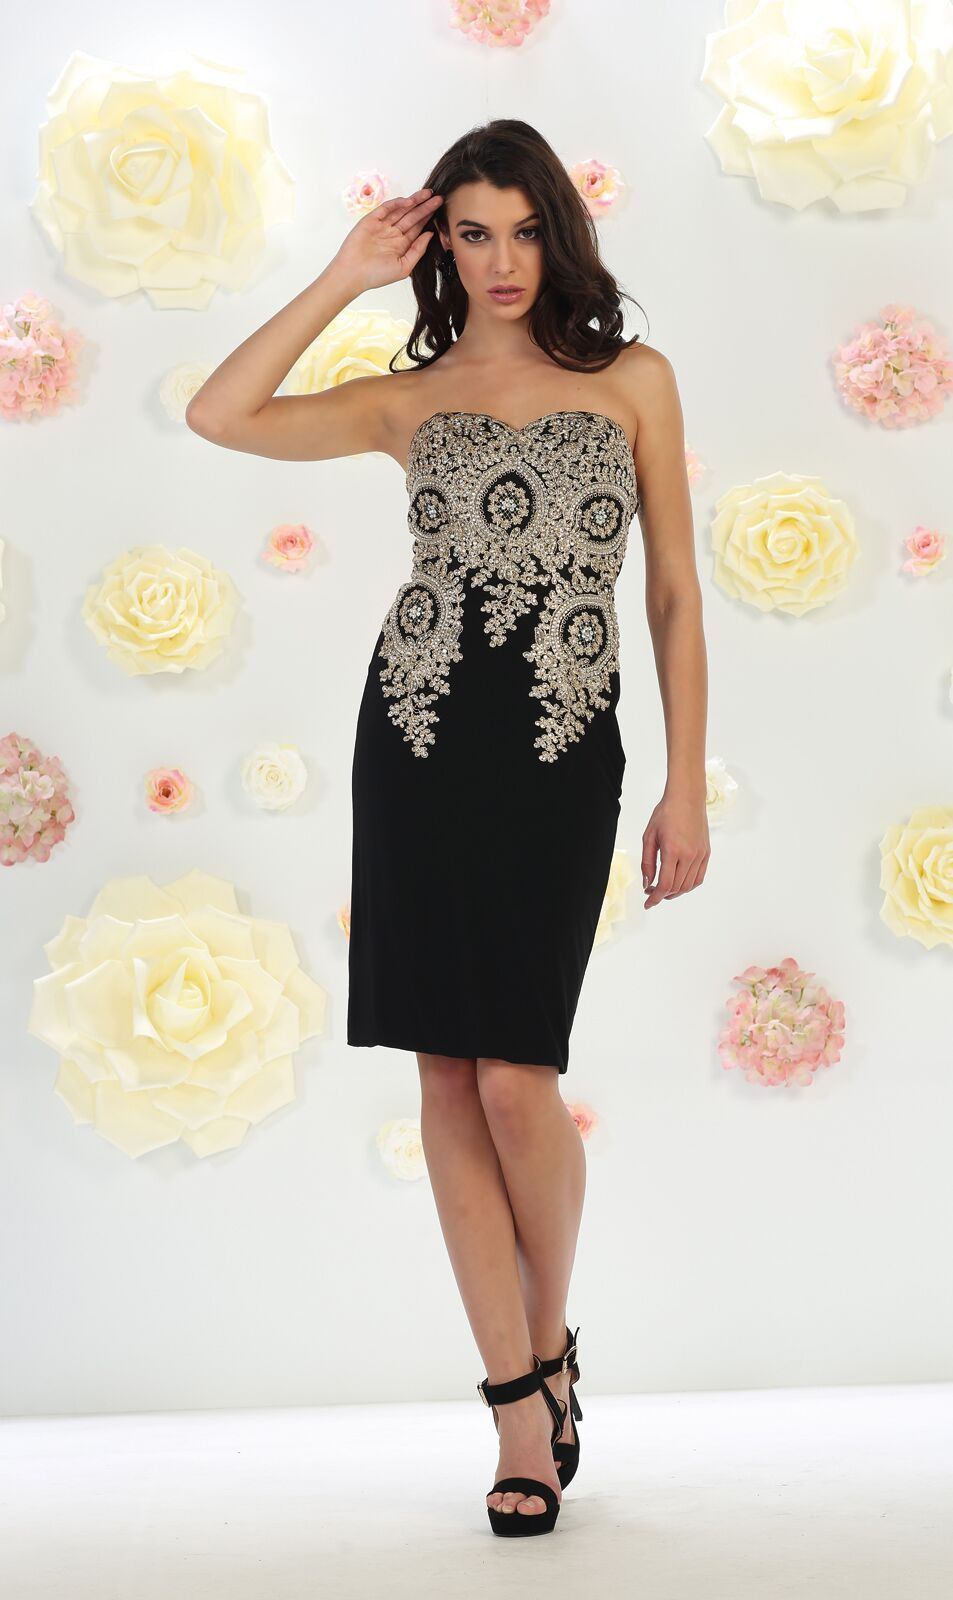 Thedressoutlet prom short cocktail dress plus size evening party